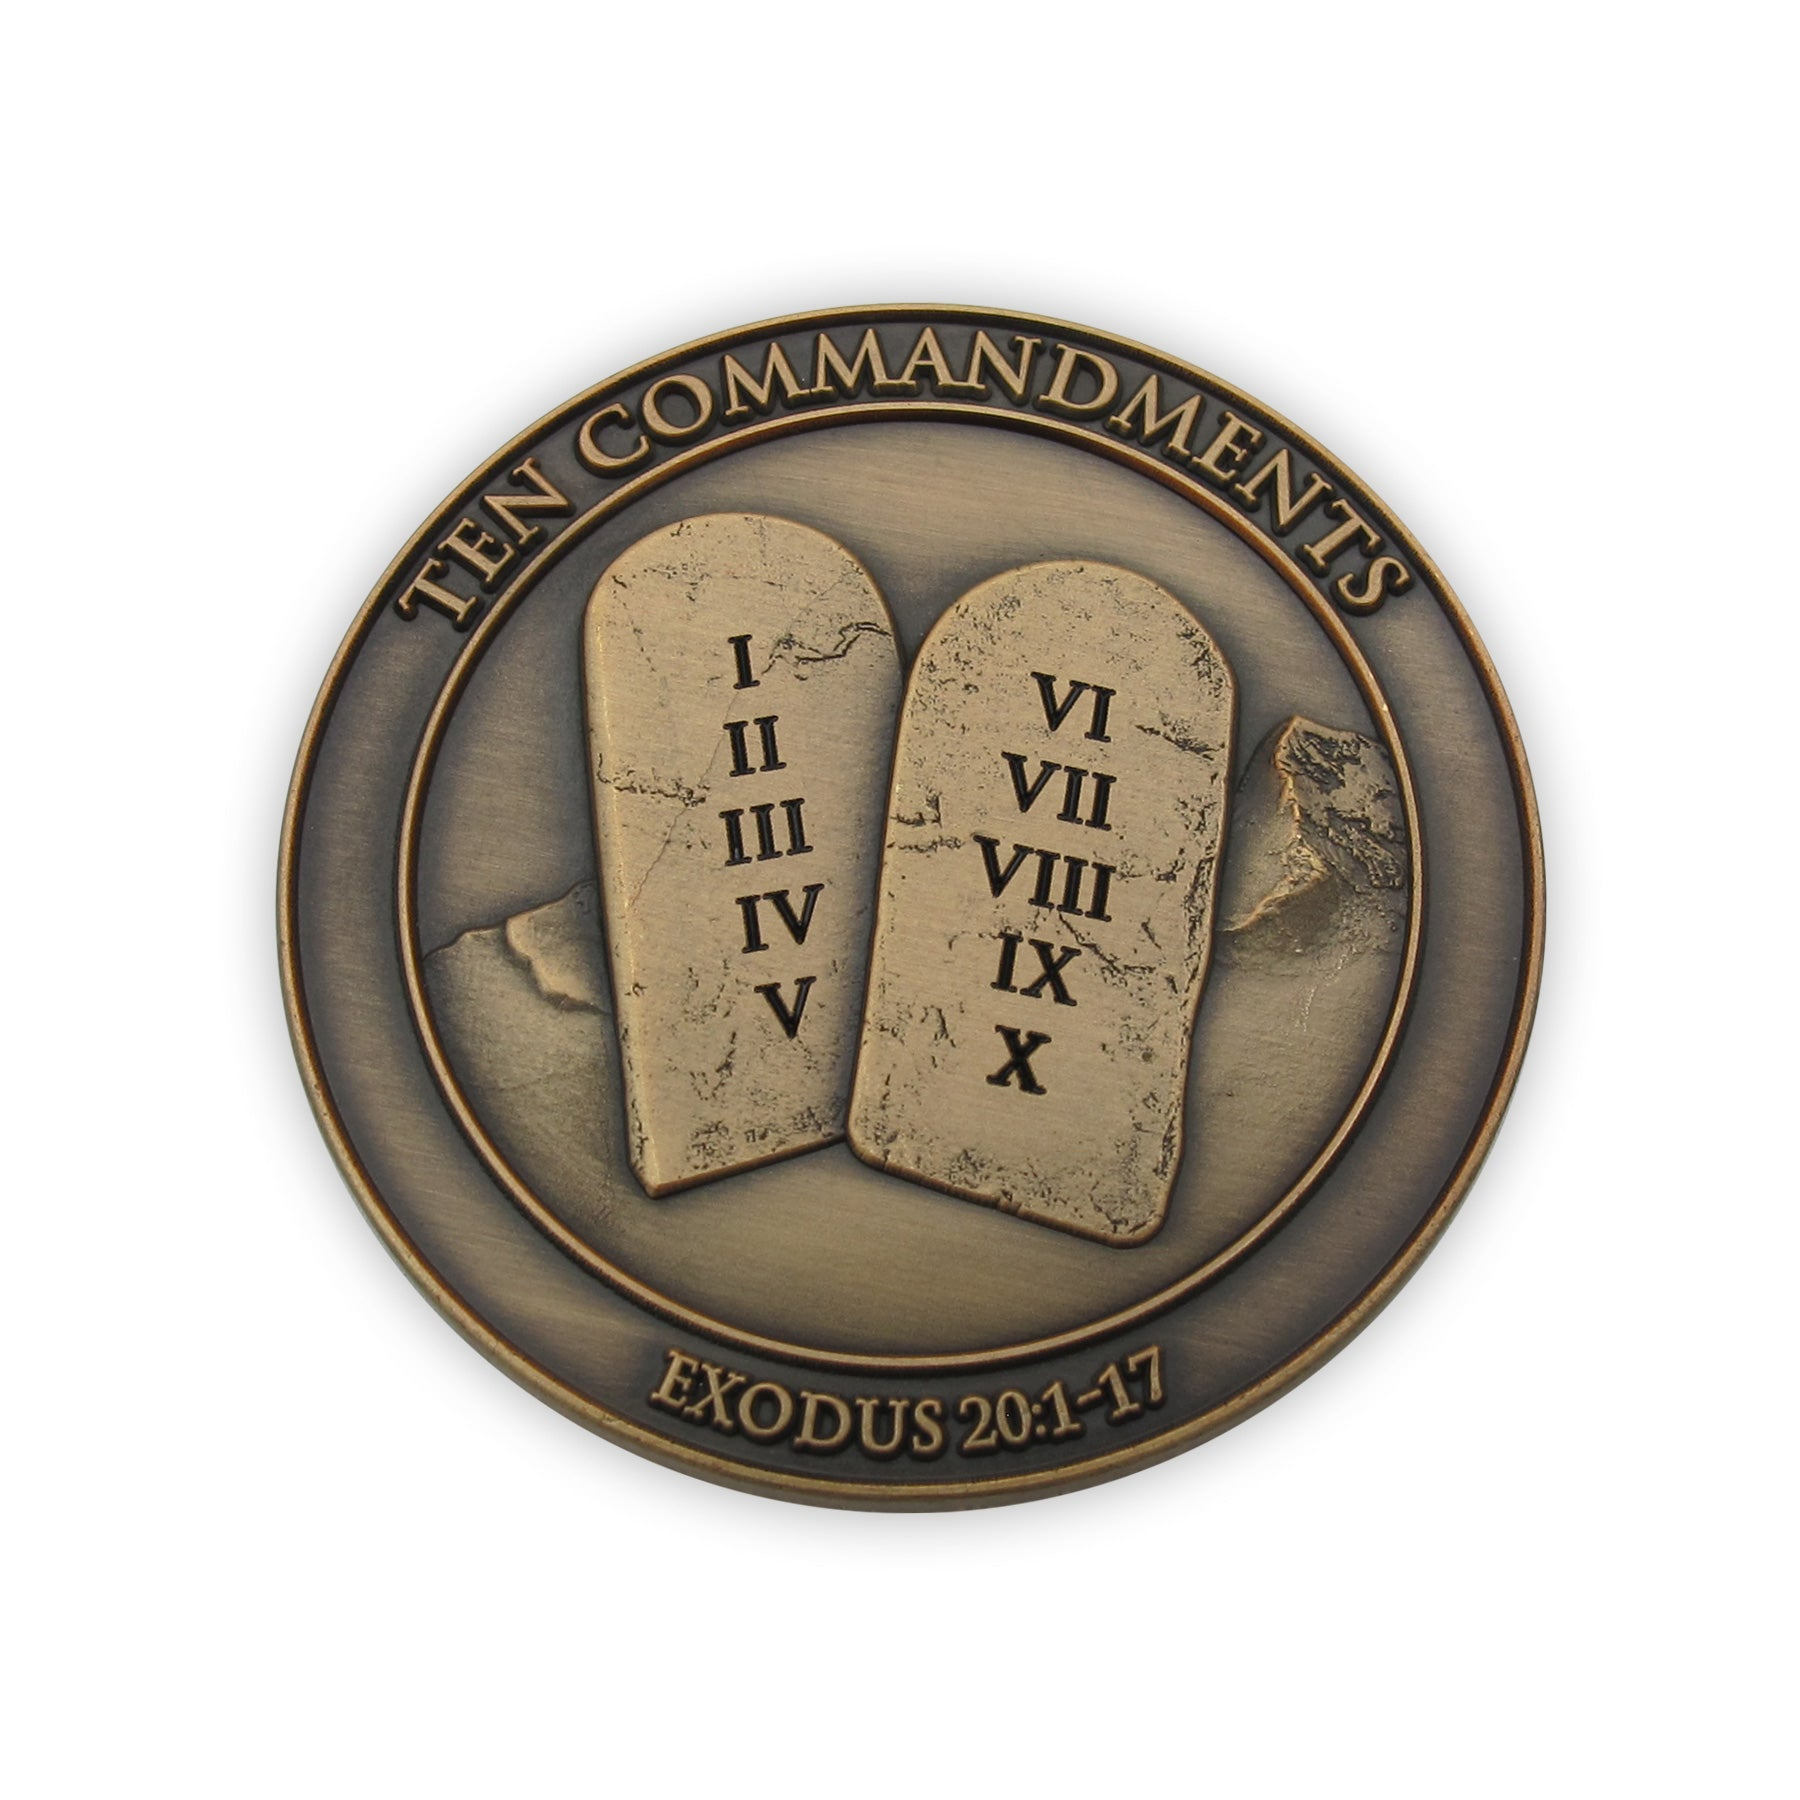 Antique Gold Plated Ten Commandments Challenge Coin - I Am the Lord Your God, Exodus 20:1-7, Handout for Sunday School or Bible Study